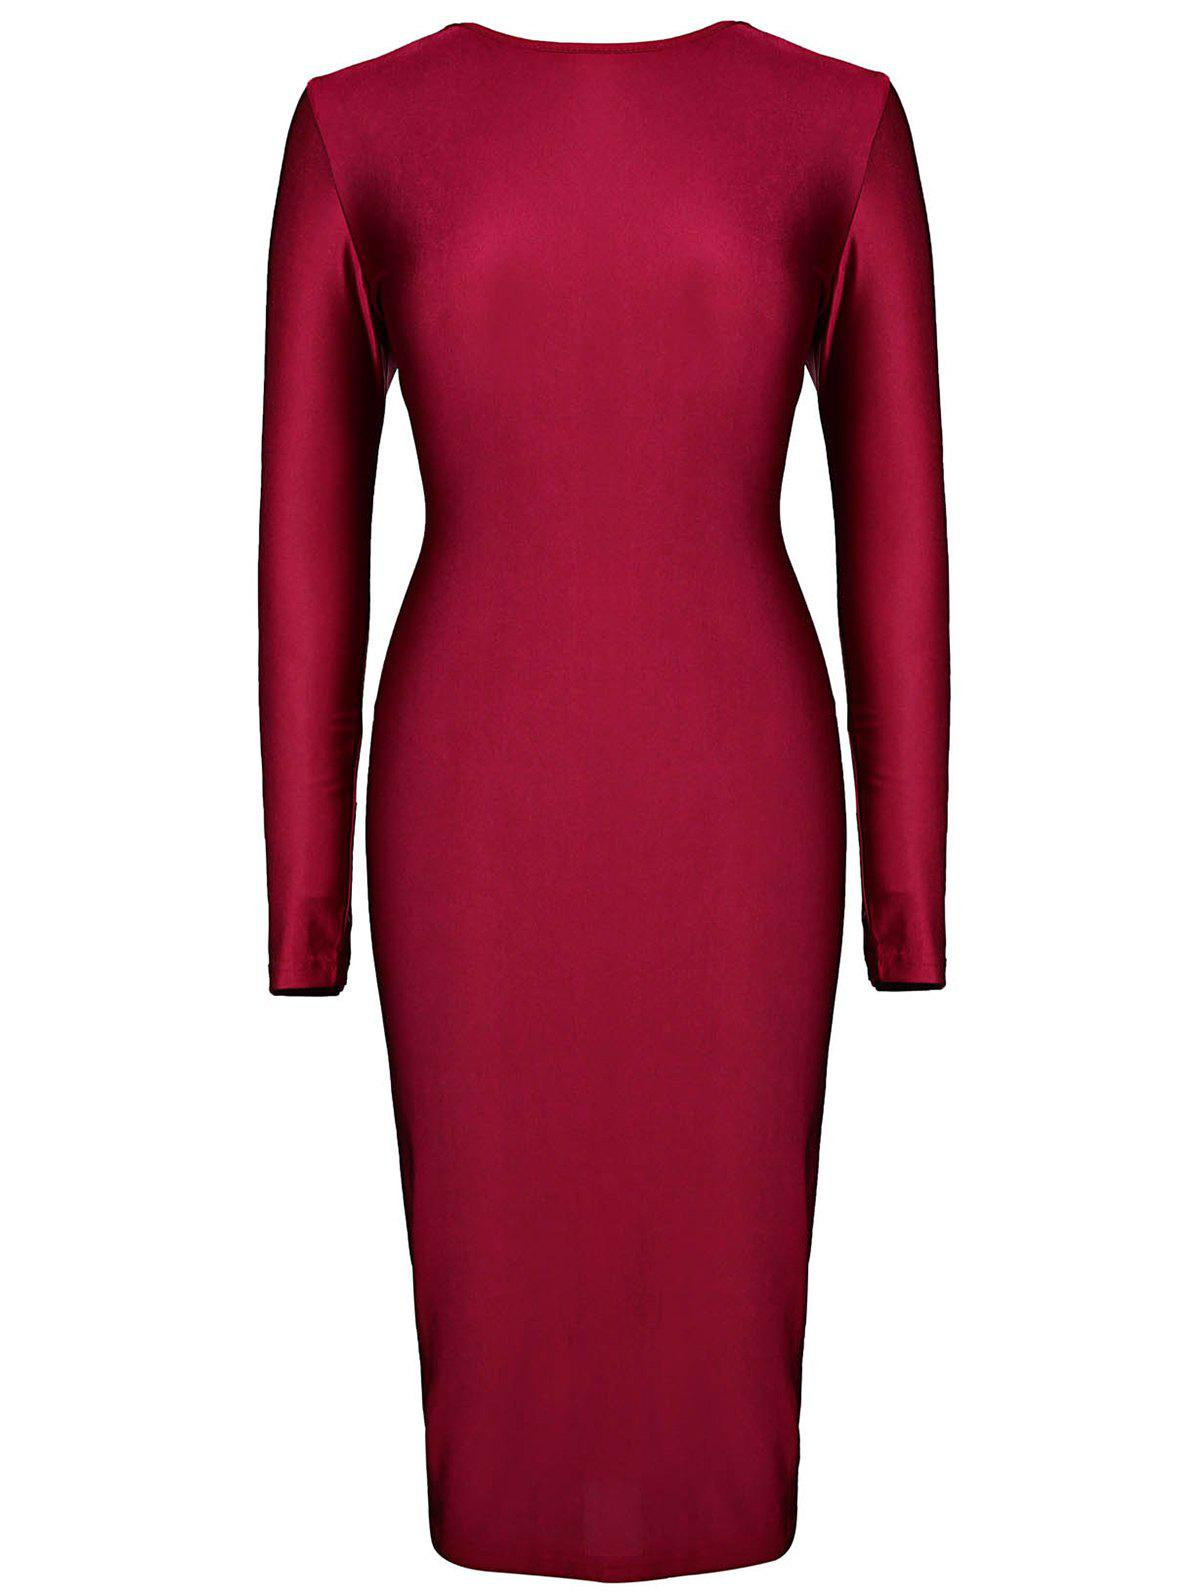 Fashion Plunging Neck Long Sleeve Bodycon Women's Dress